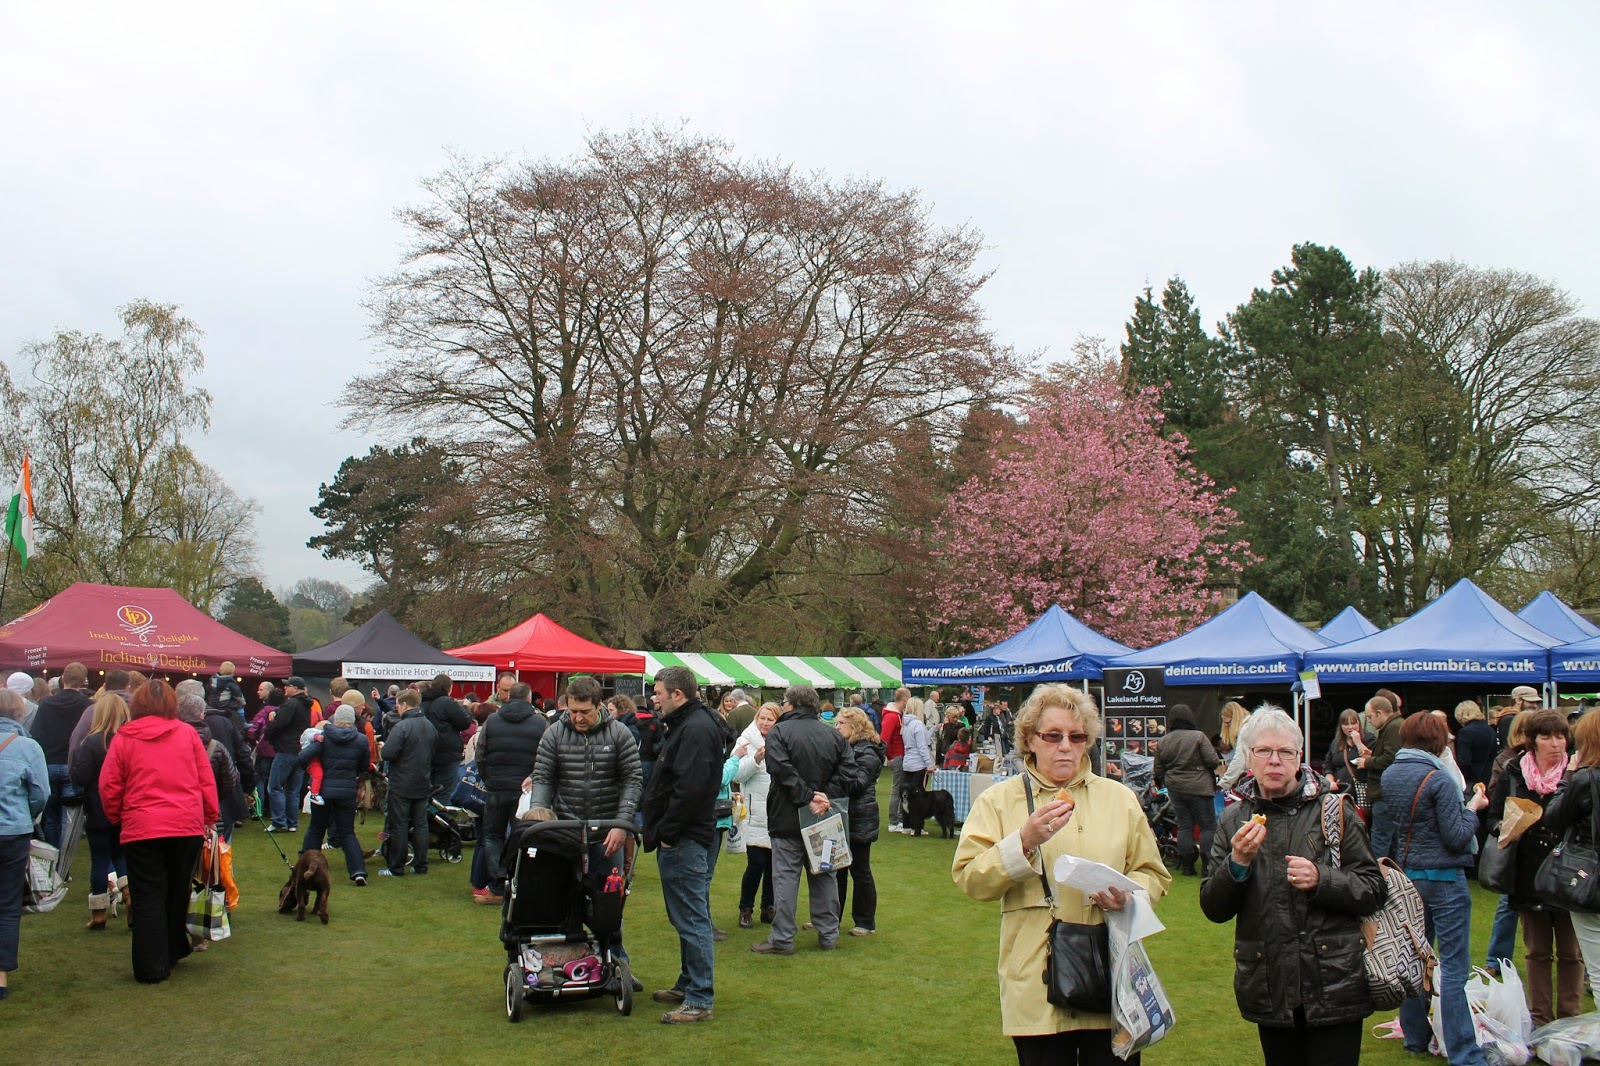 Bishop Auckland Food Festival 2014 - Stalls